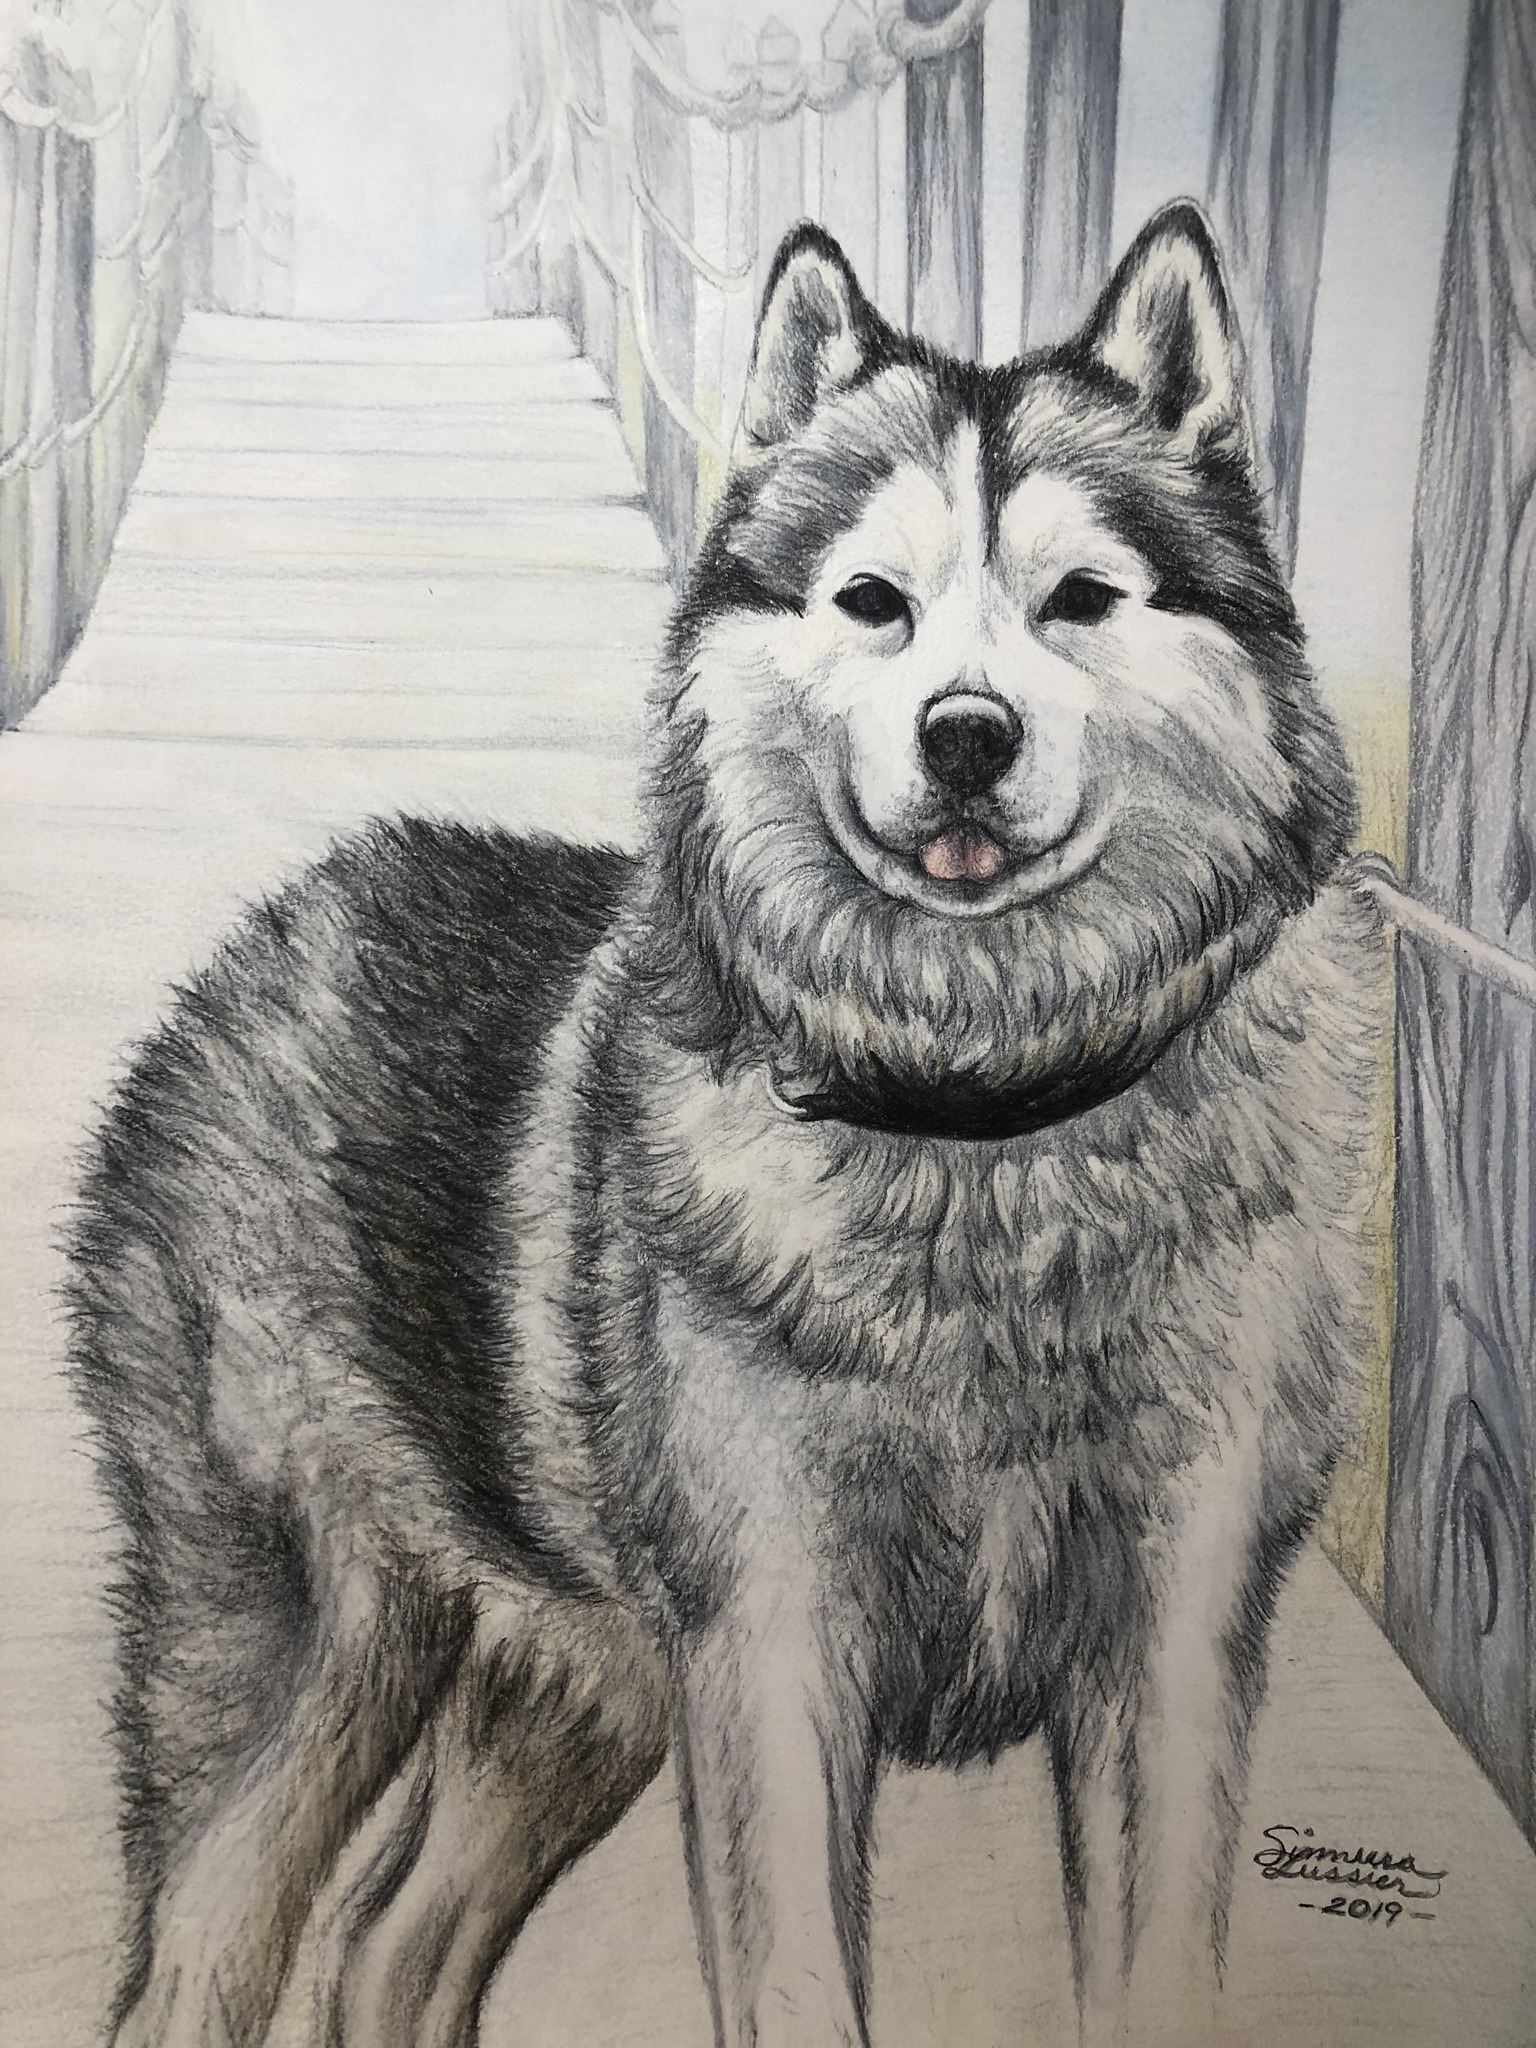 Fanta, Pet Portrait | Pen & Ink and Colored Pencils on Mixed Media Paper | 9 x 12 inches | 2020